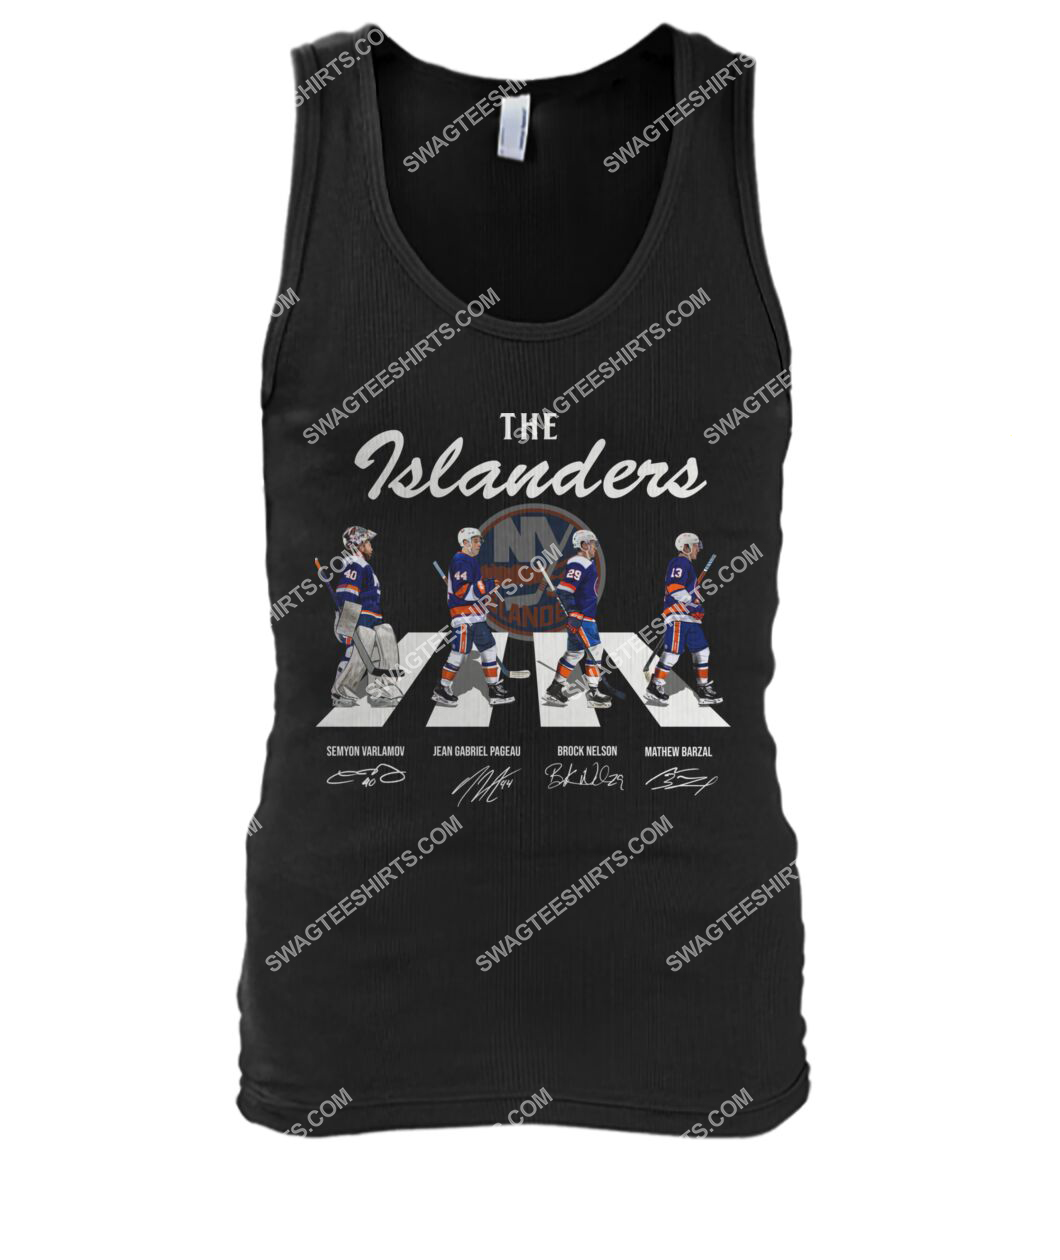 abbey road the new york islanders signatures tank top 1